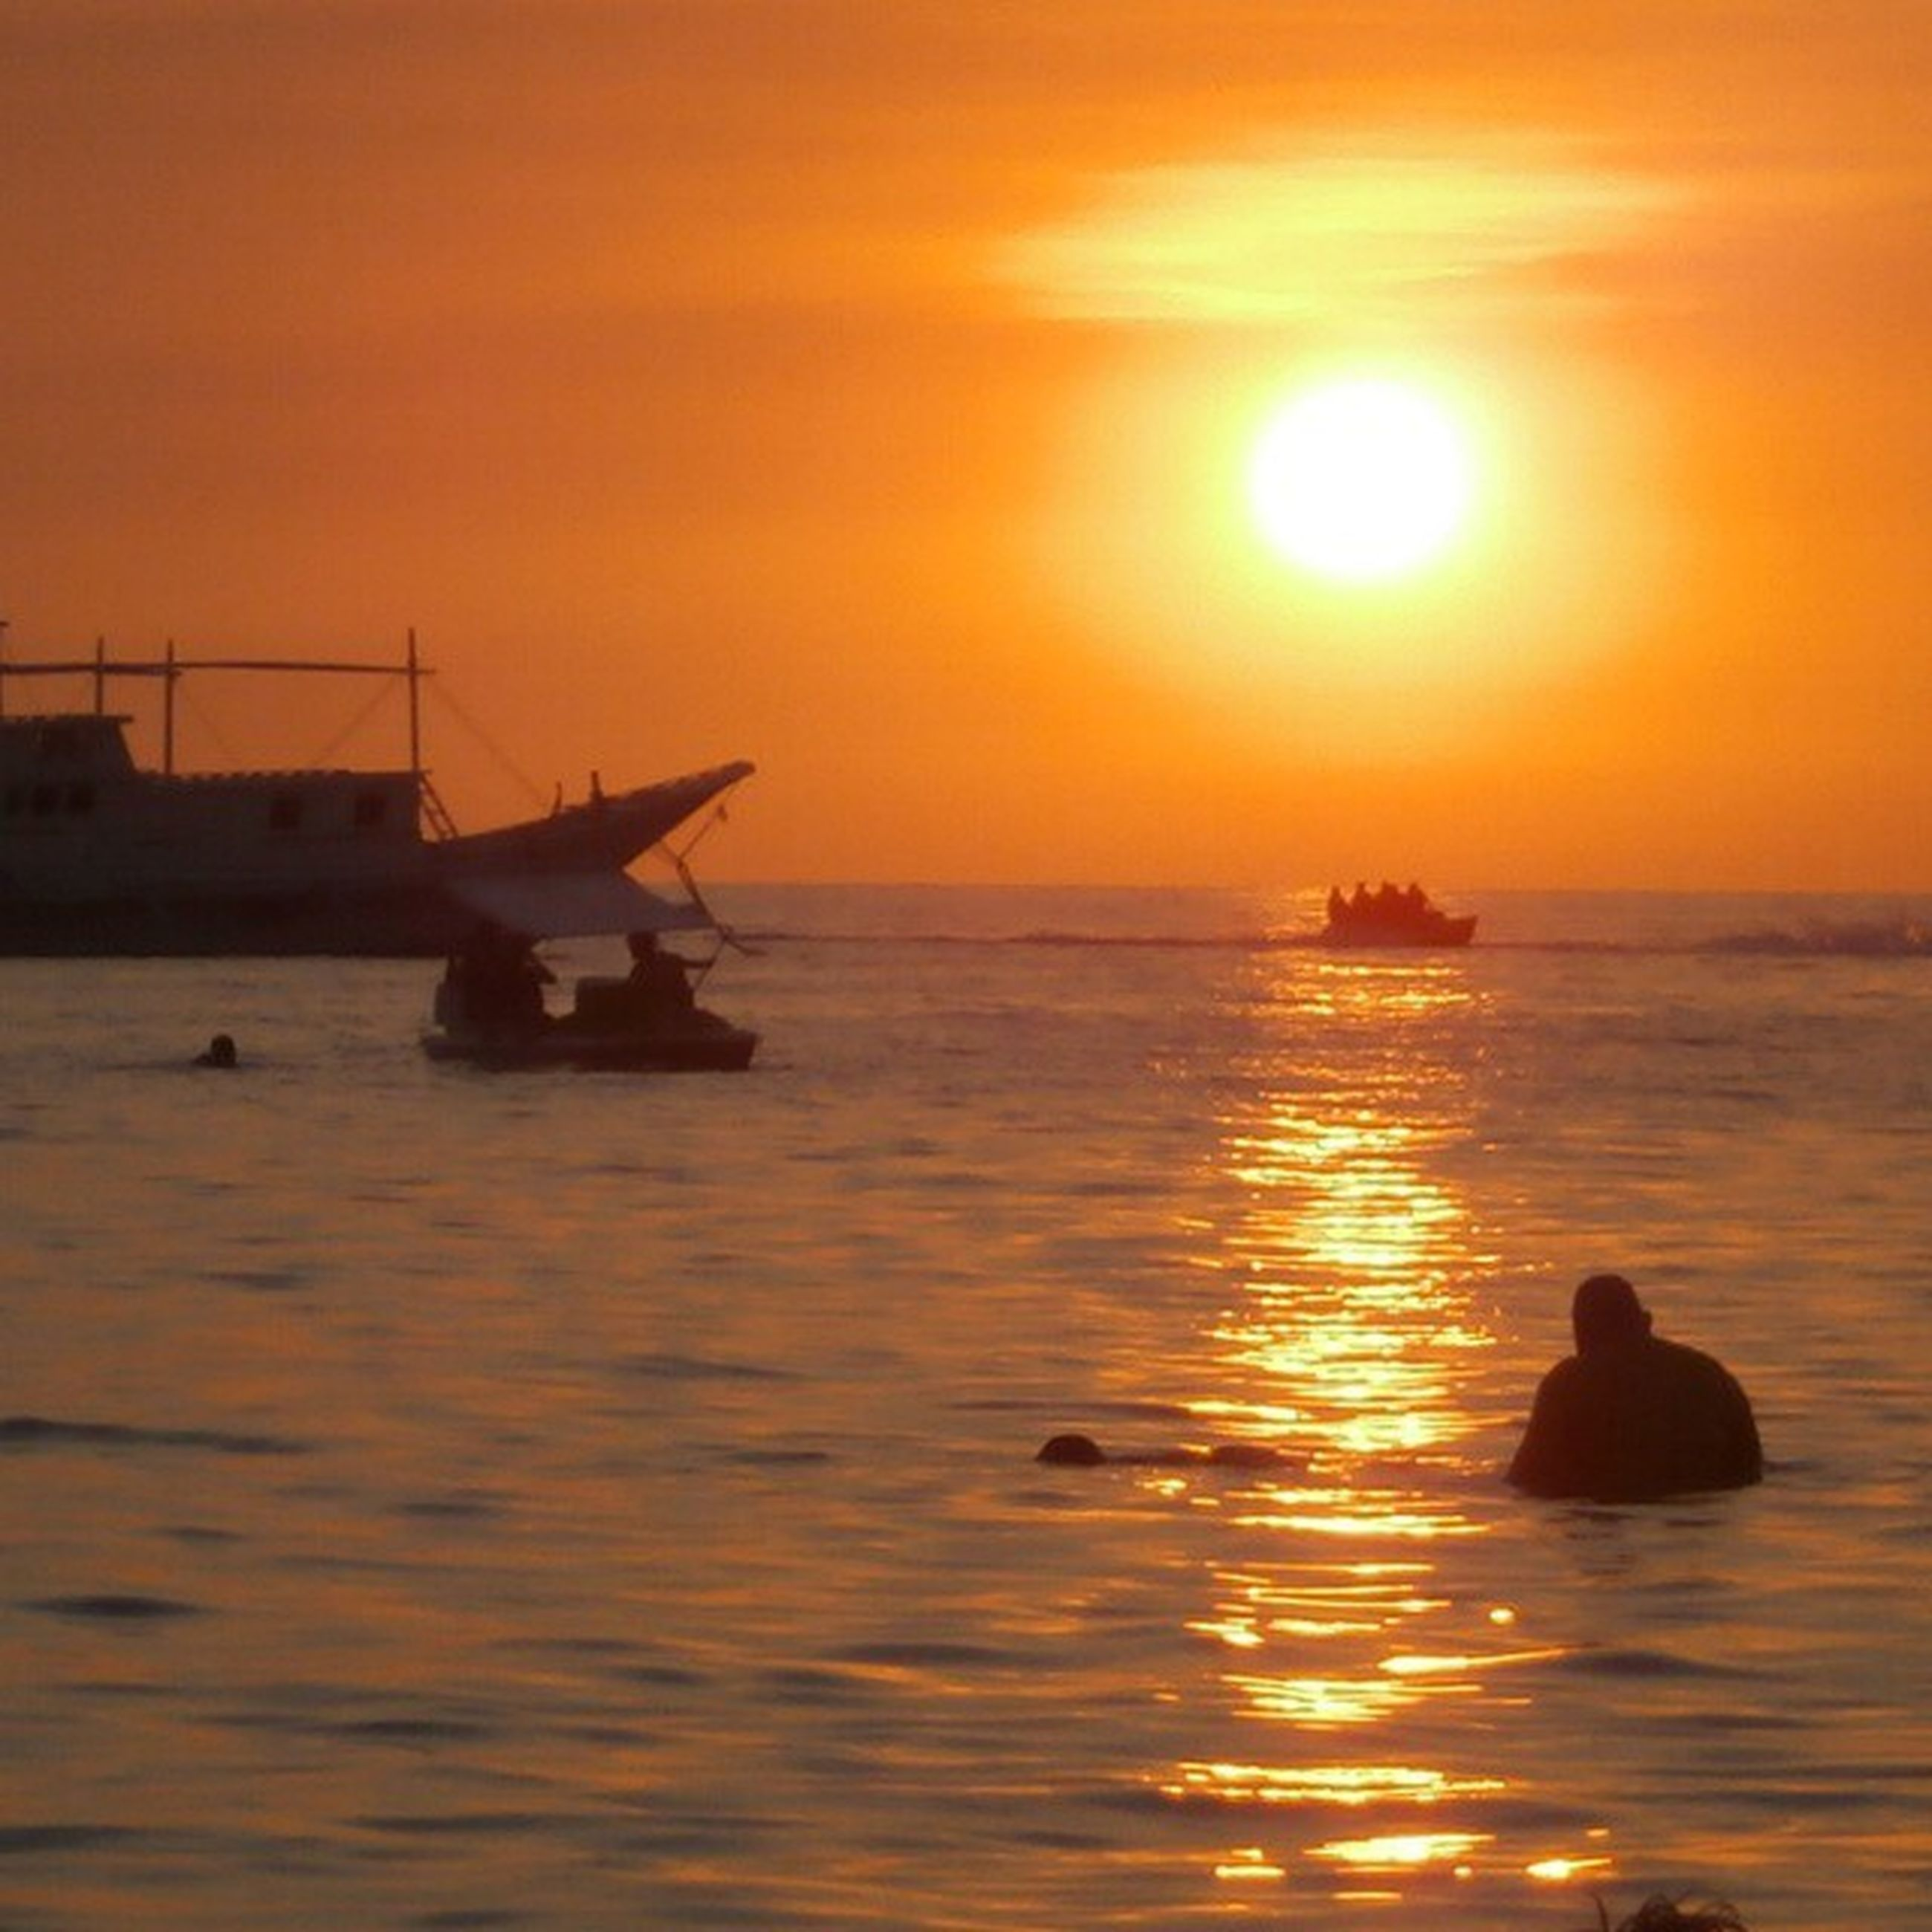 sunset, sea, orange color, sun, water, beauty in nature, silhouette, scenics, nature, sky, nautical vessel, sunlight, horizon over water, tranquility, transportation, outdoors, real people, men, people